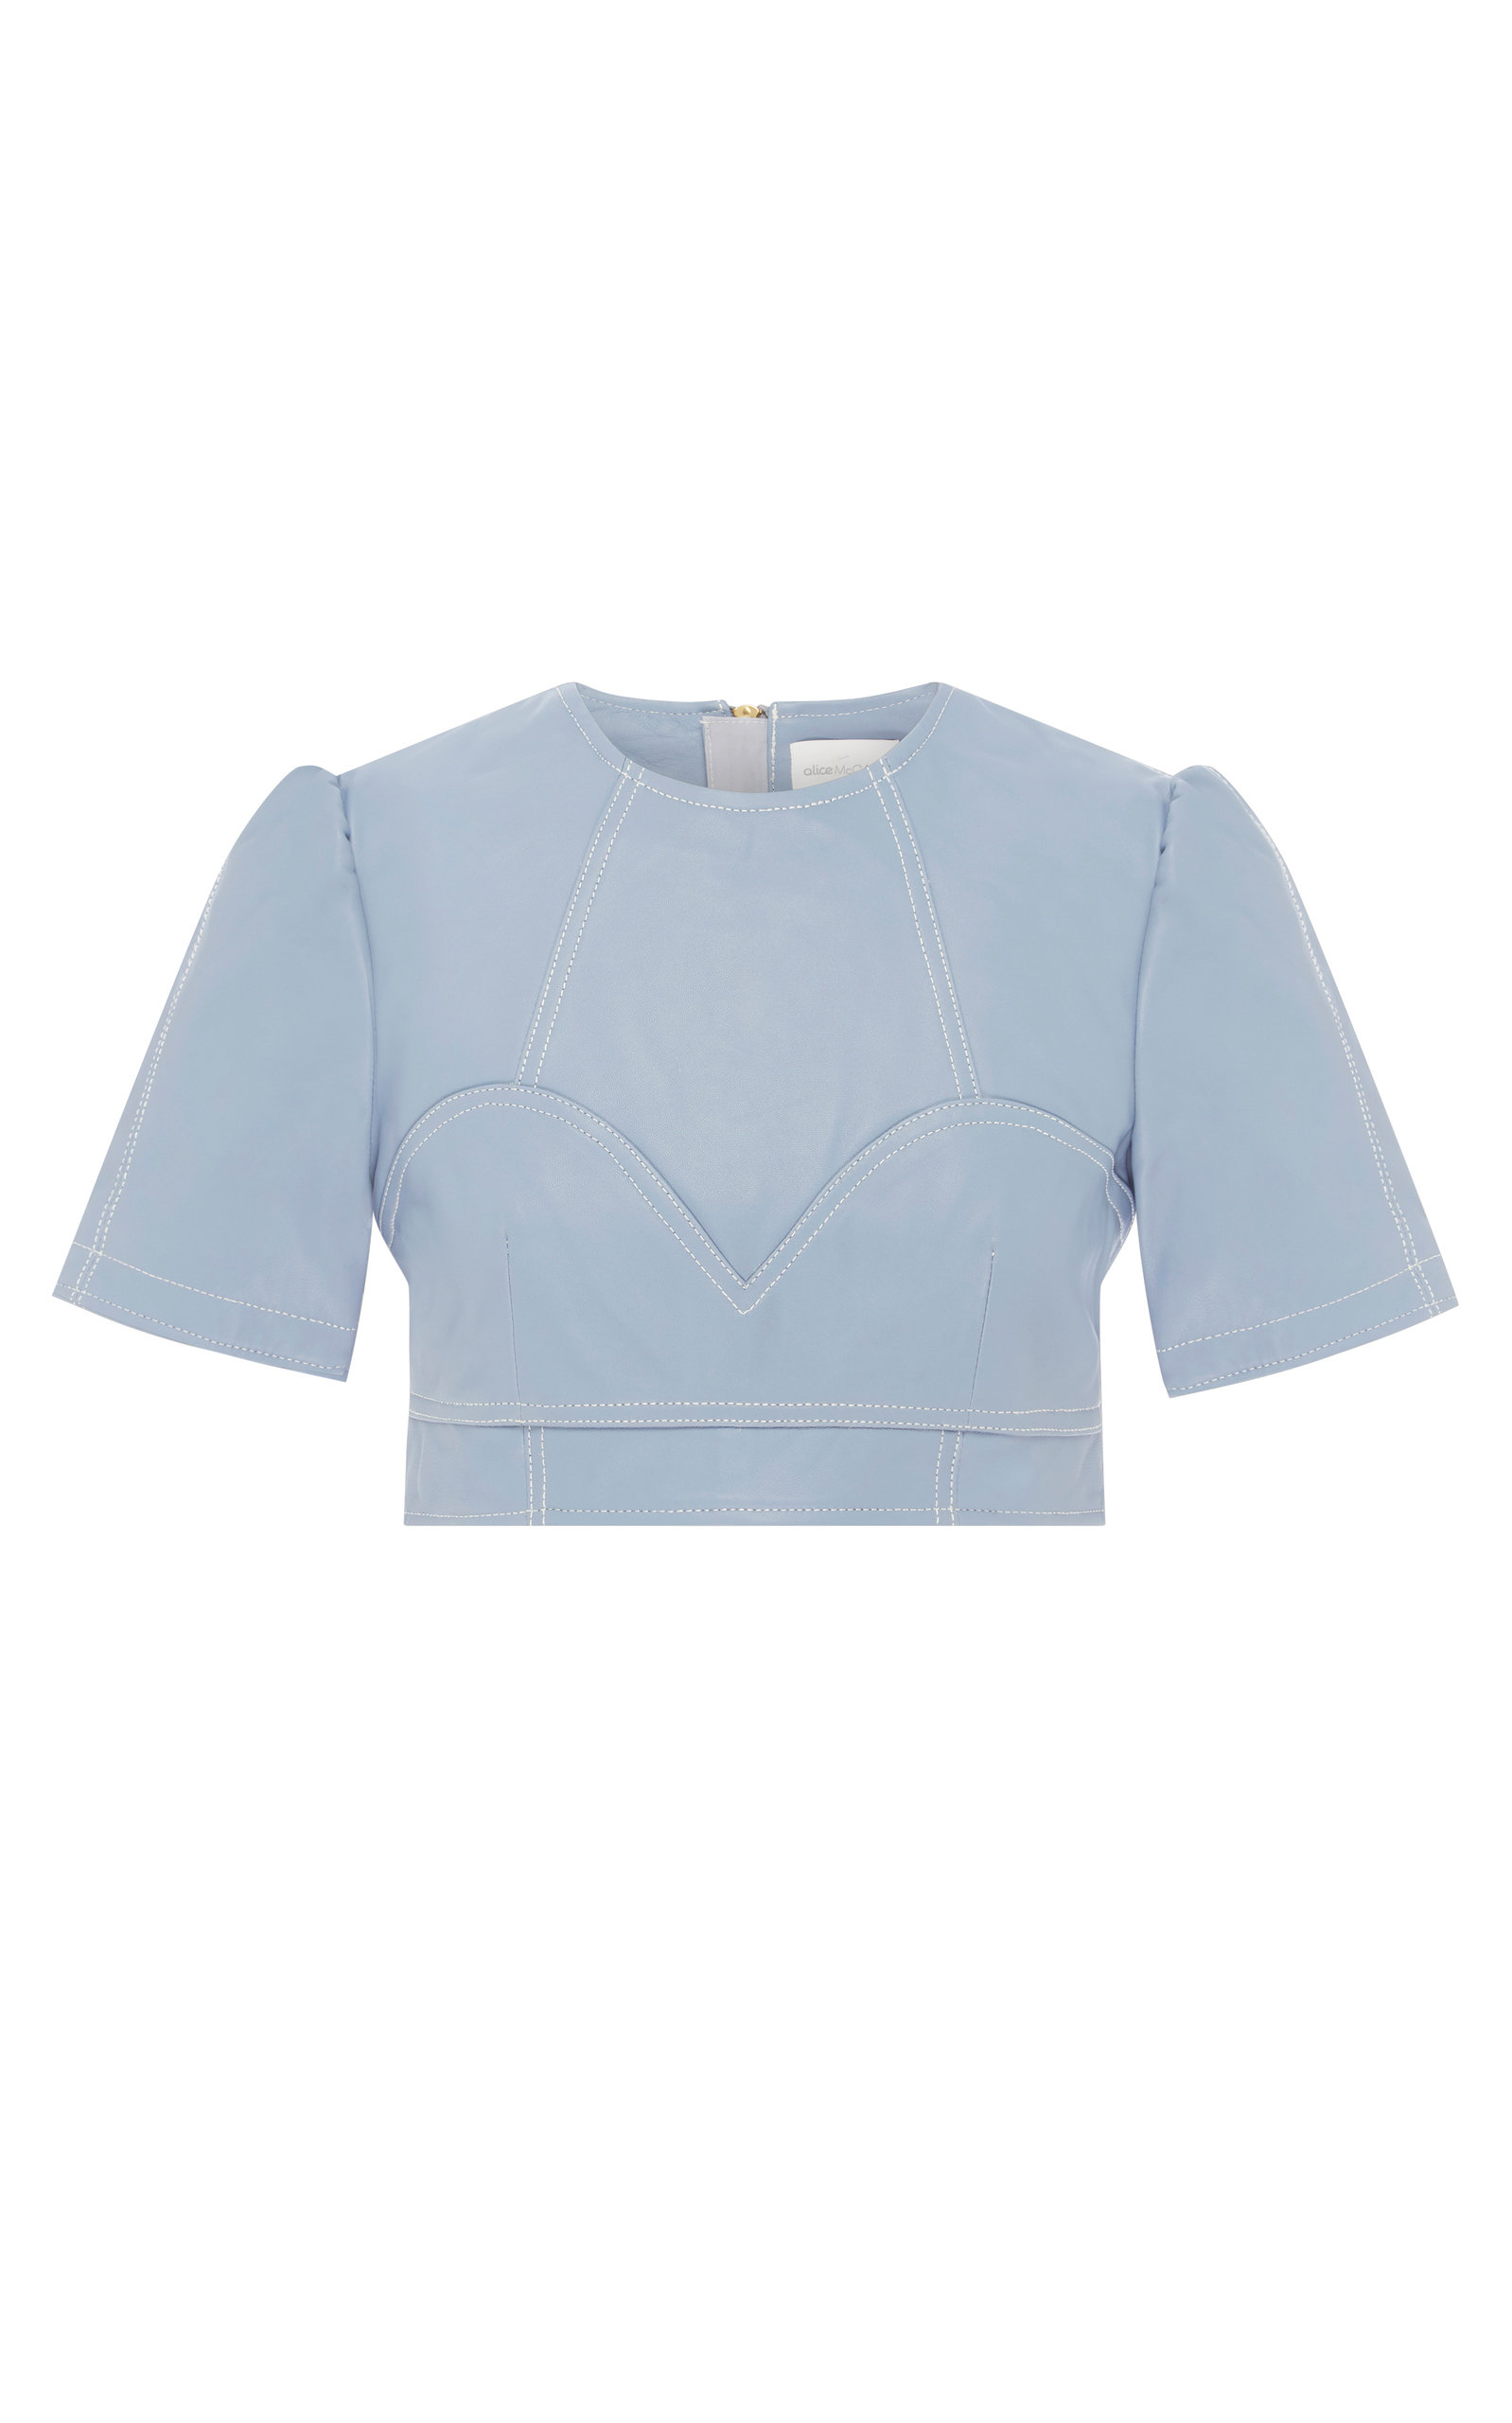 Alice Mccall | Alice McCall Incantations Lamb Leather Crop Top | Clouty